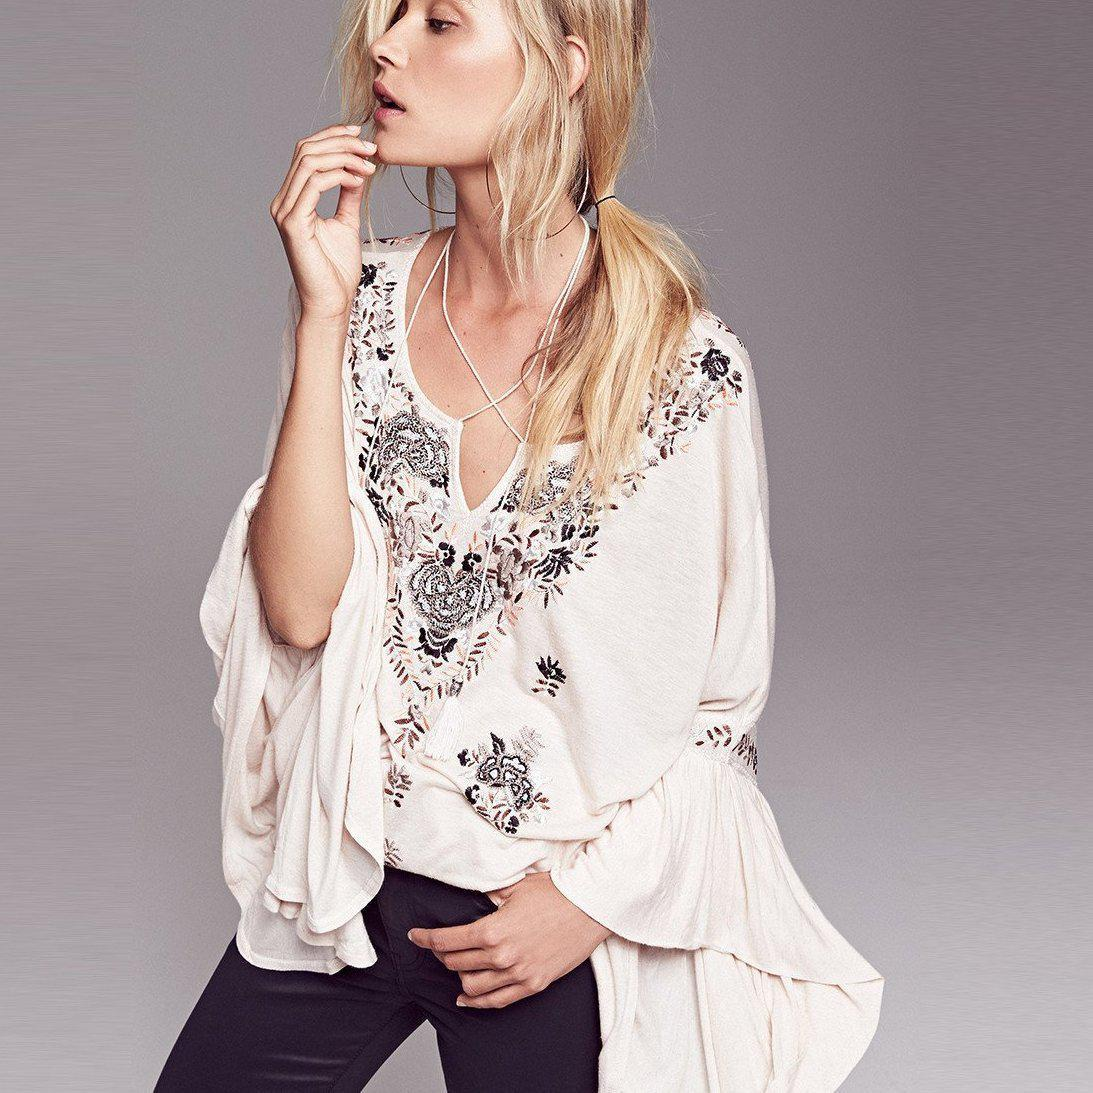 Siren Song Top Women Vintage Embroidery Floral Ruffle Cuffs V-Neck Plus Size Loose Shirt Tops Boho-SHIRTS-SheSimplyShops